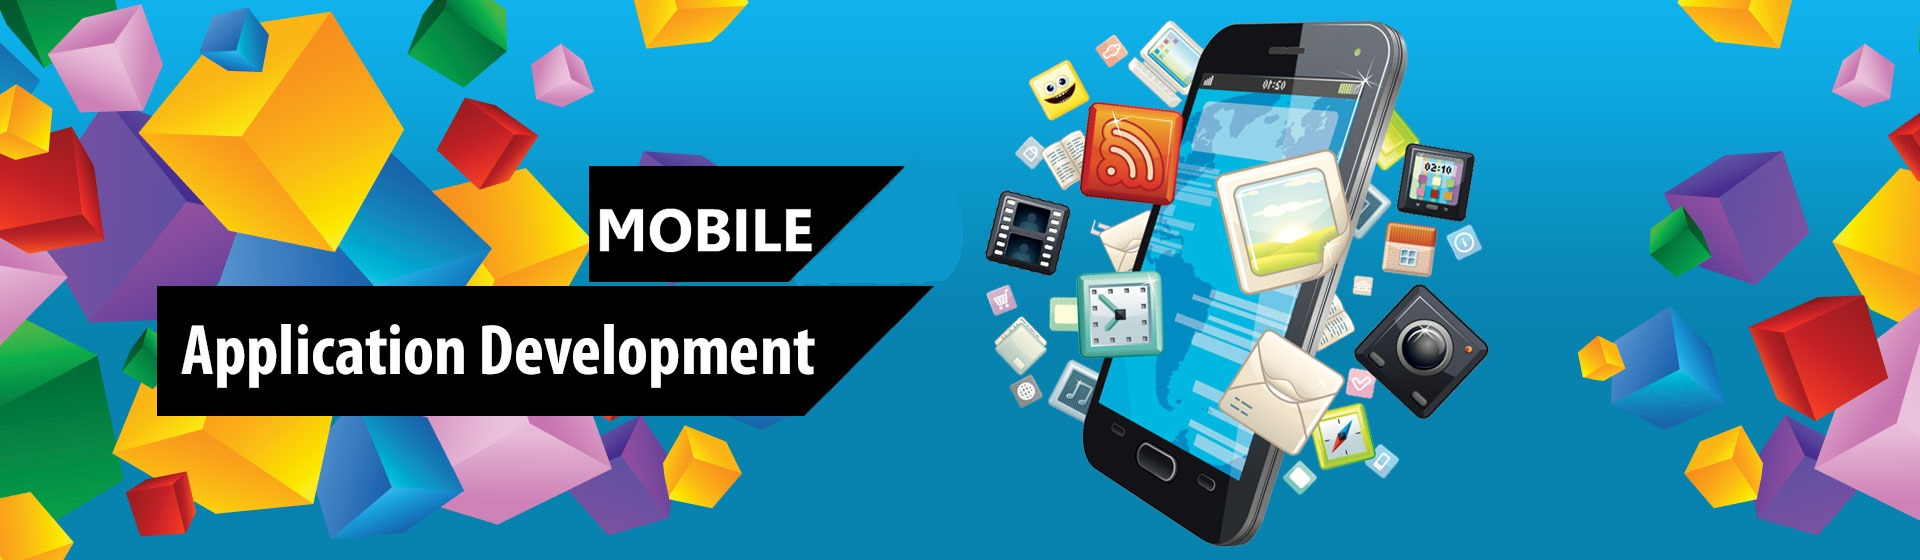 Mobile App Development Company in Kolkata India